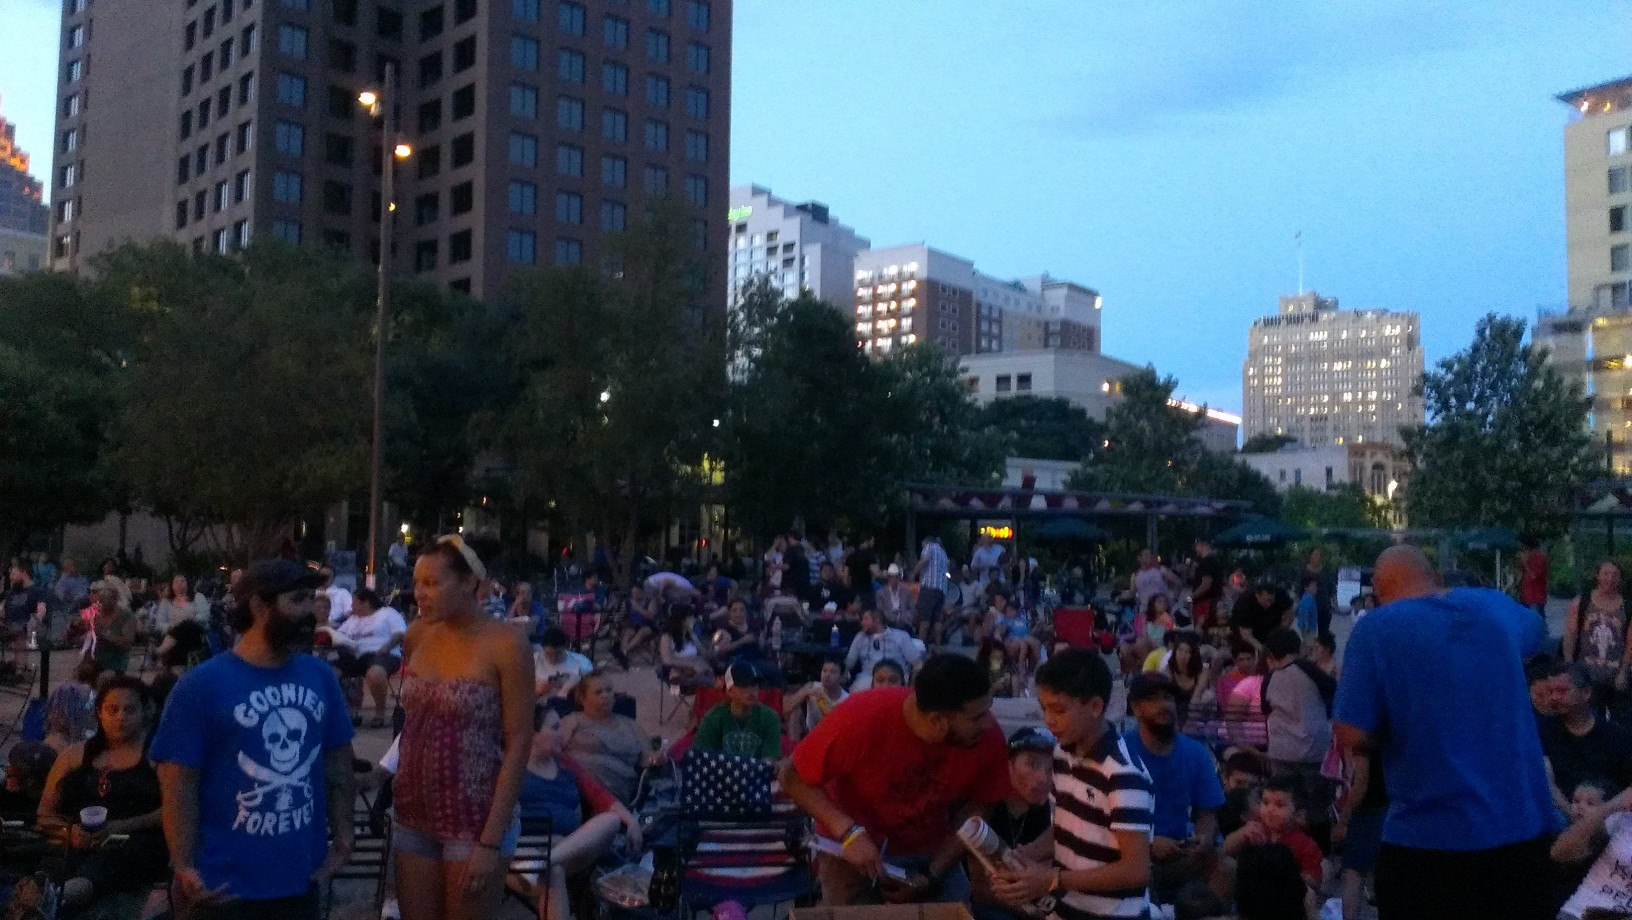 A large crowd gathers for Cycle-In Cinema on a recent Thursday night in Main Plaza. Photo courtesy of Main Plaza Conservancy / Ashley Quinn.